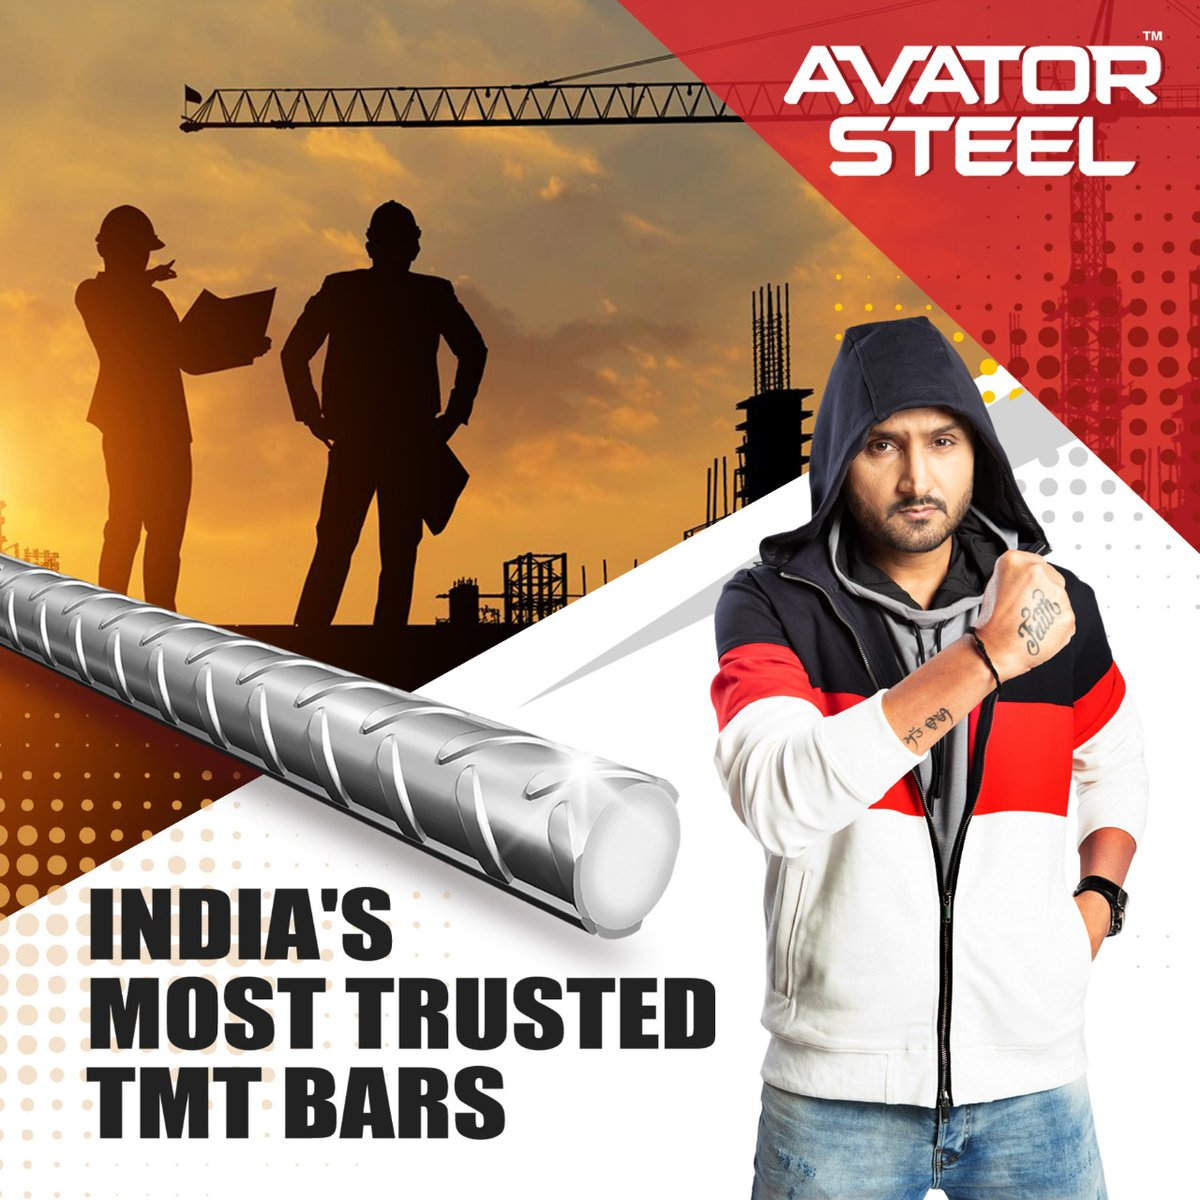 #AvatorSteel TMT bars are the no. 1 choice of builders all across India because of their superior properties.  When you build your dream home, always choose the best.   #HarbhajanSingh #rustproof #earthquakeproof #FireResistant  @harbhajan_singh